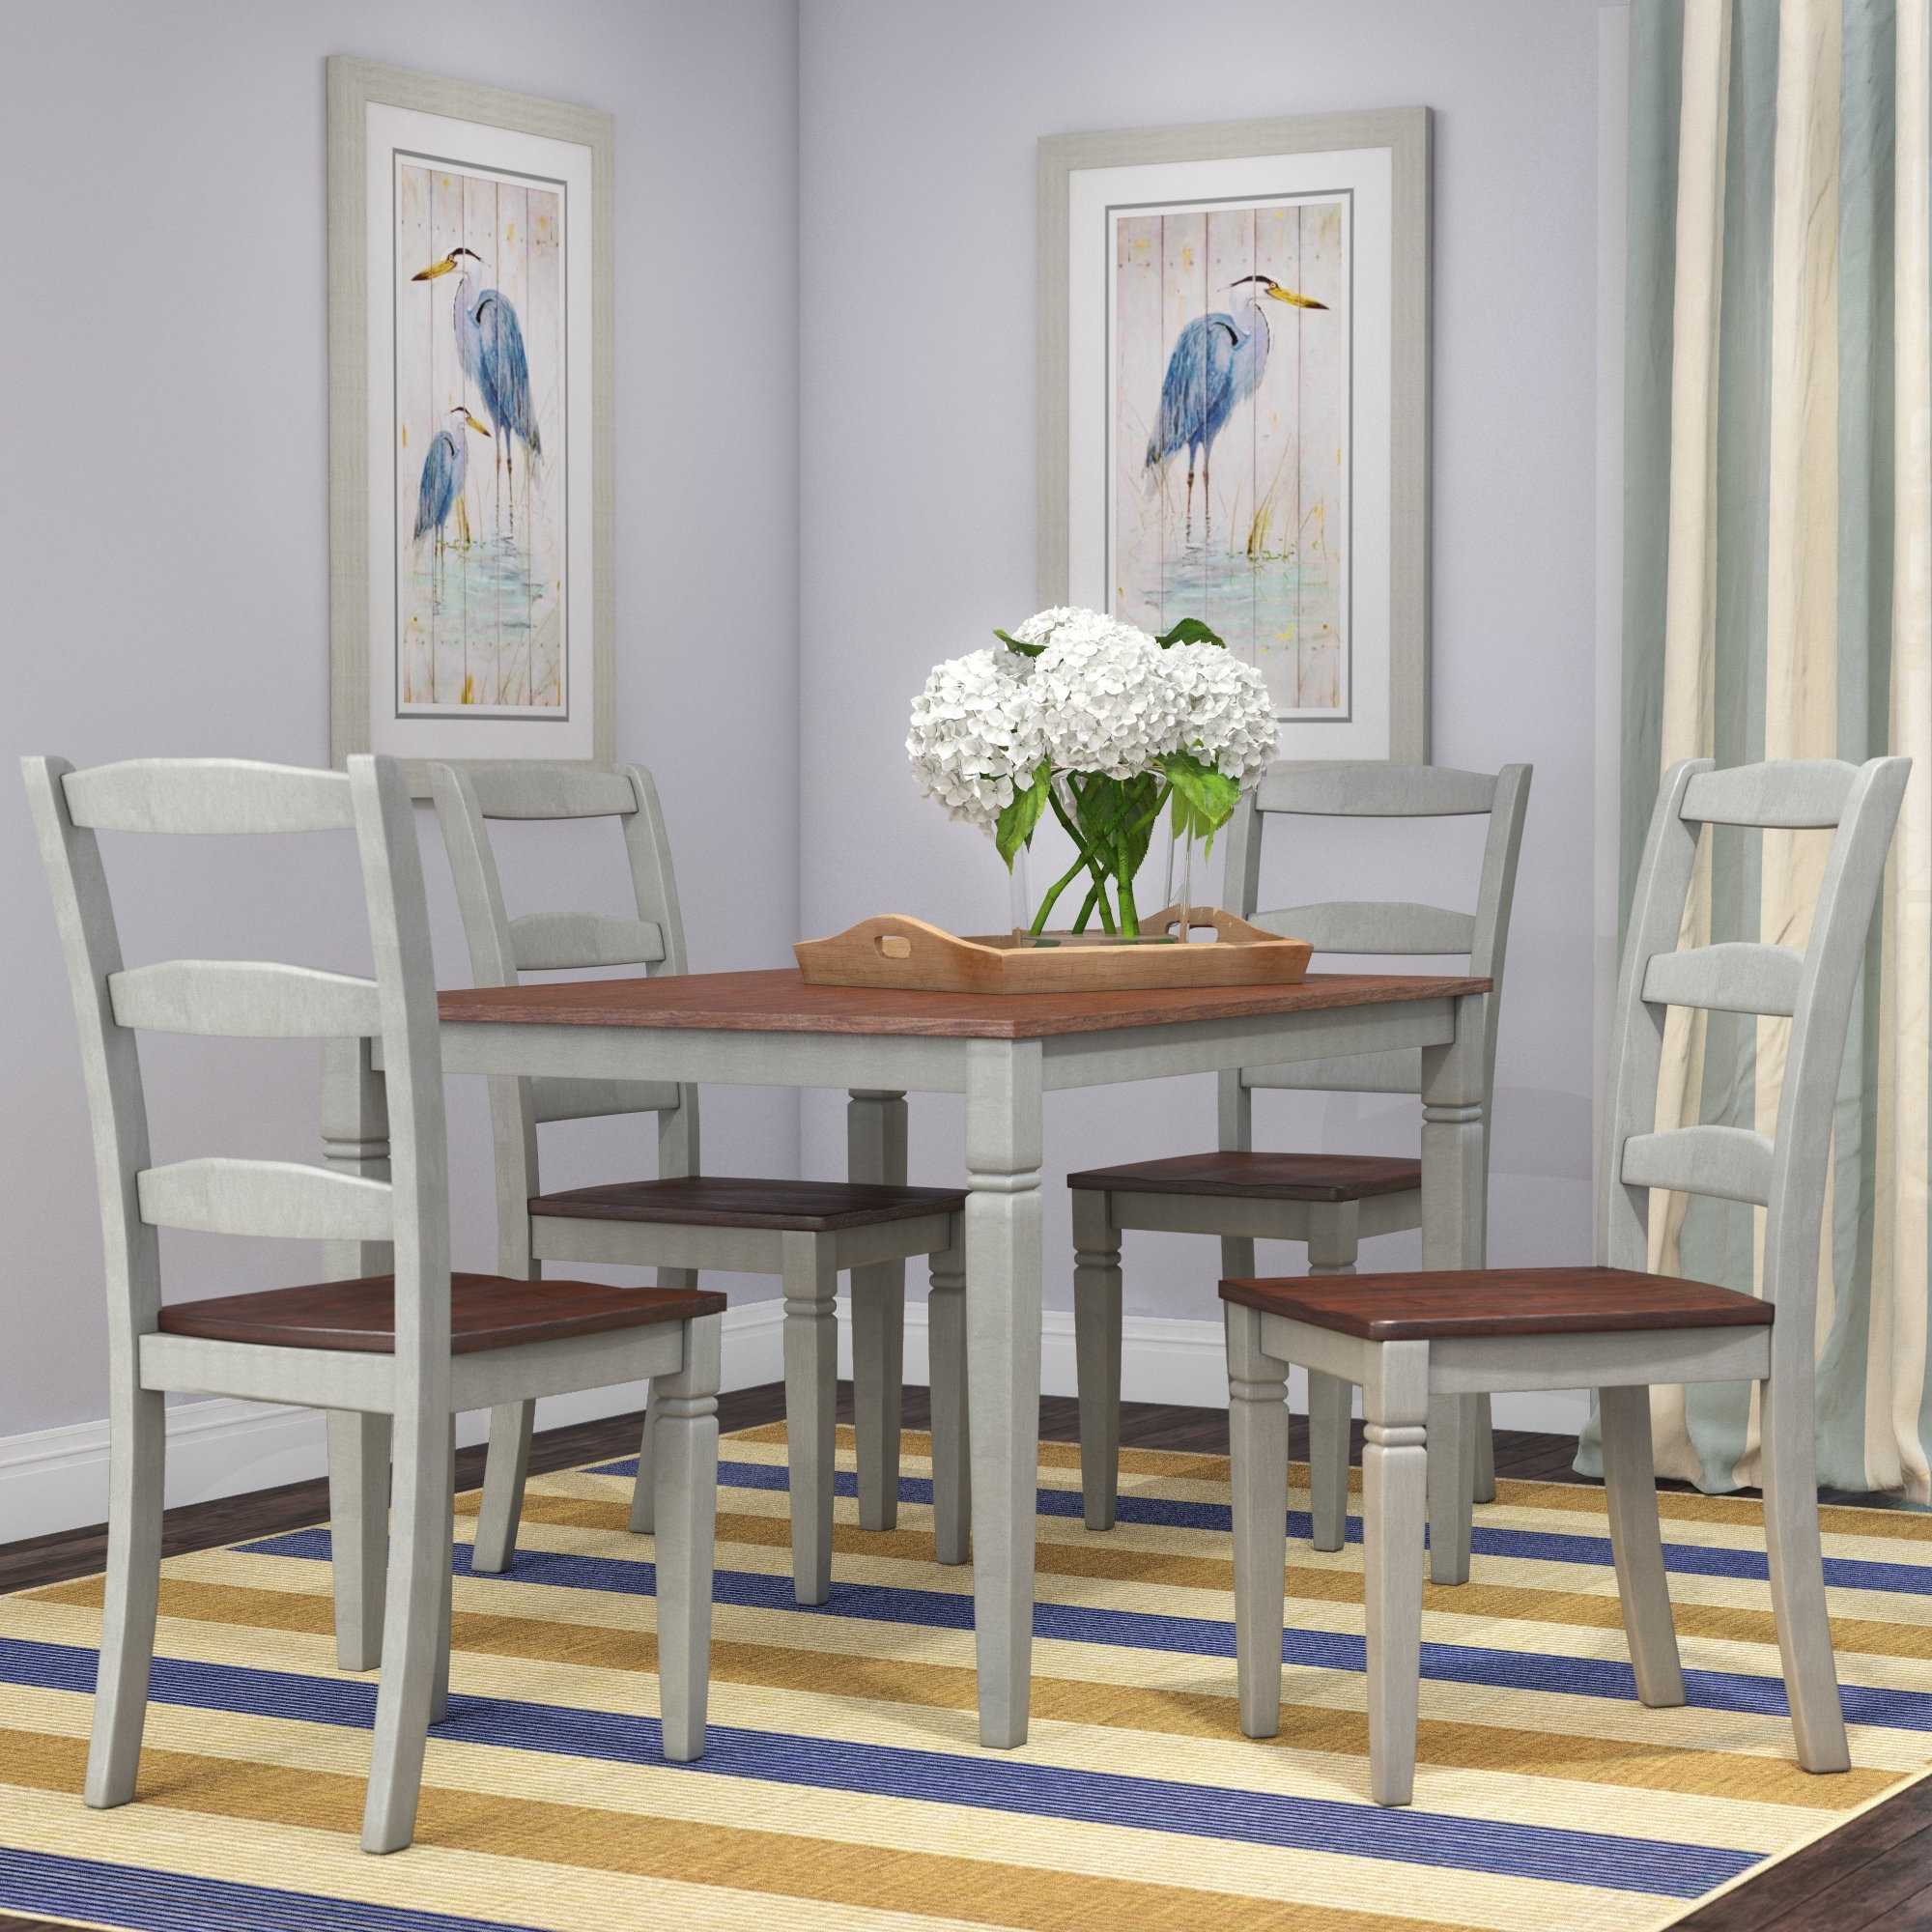 Beachcrest Home Cambridgeport 5 Piece Dining Set & Reviews | Wayfair With Regard To Recent Kirsten 5 Piece Dining Sets (Image 6 of 20)